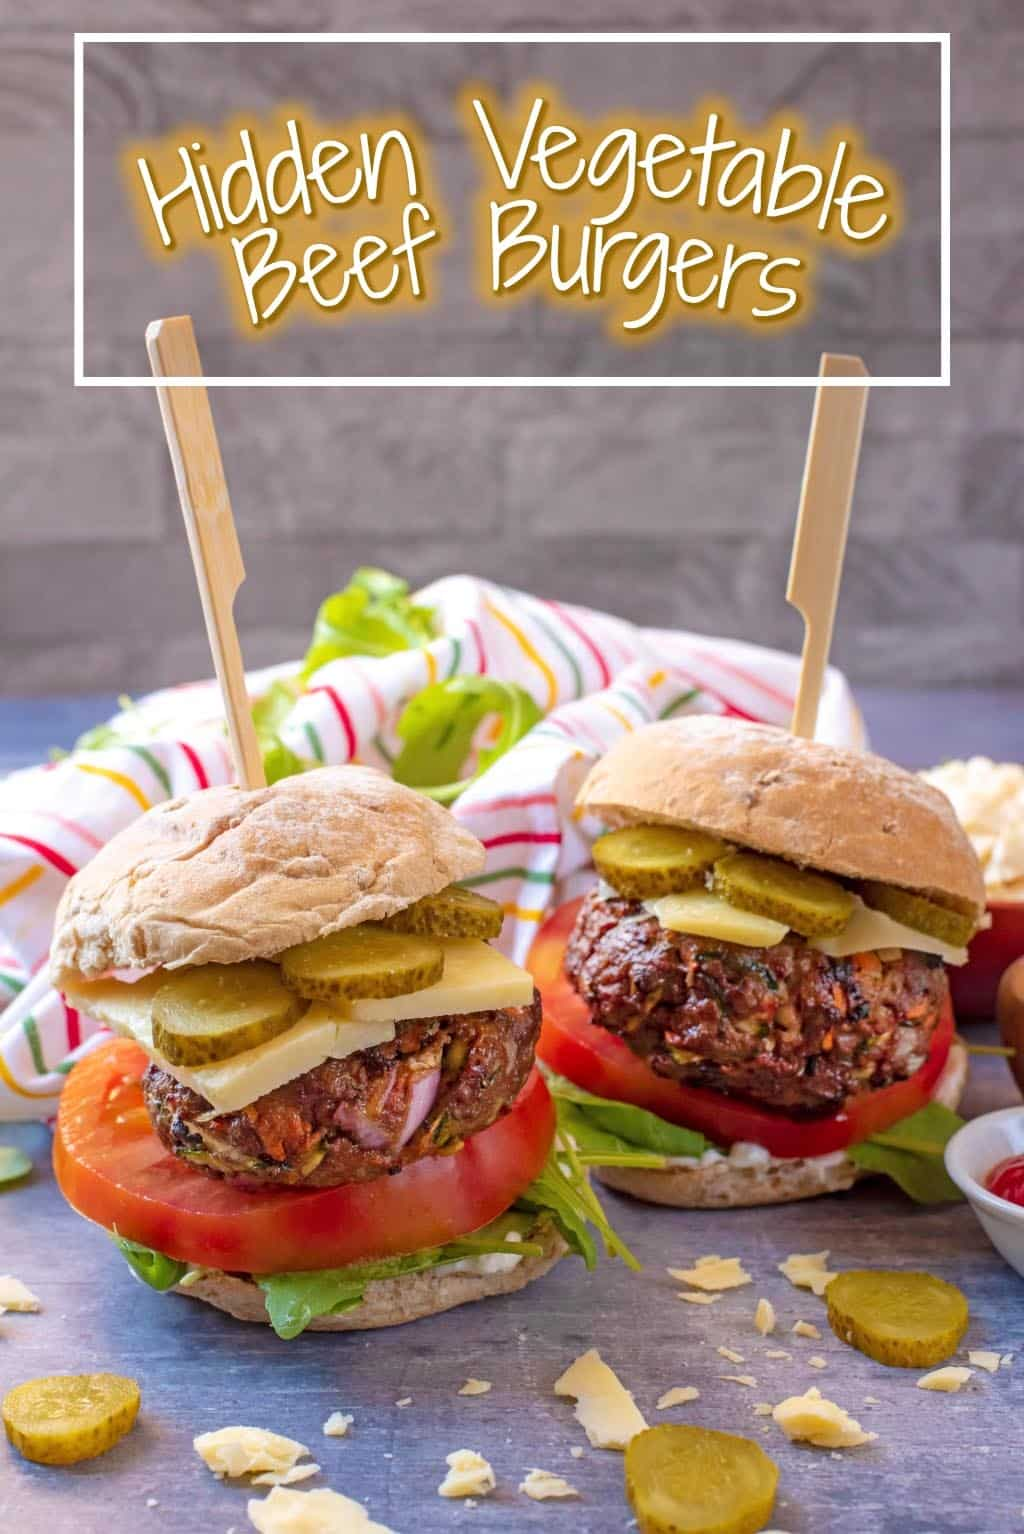 Wouldn't it be great to enjoy a homemade beef burger, with all the trimmings, and know you are eating some vegetables too? Well, now you can with these Hidden Vegetable Beef Burgers. They are great for fussy eaters that would rather eat burgers than vegetables, because this recipe is both, and they will never know!